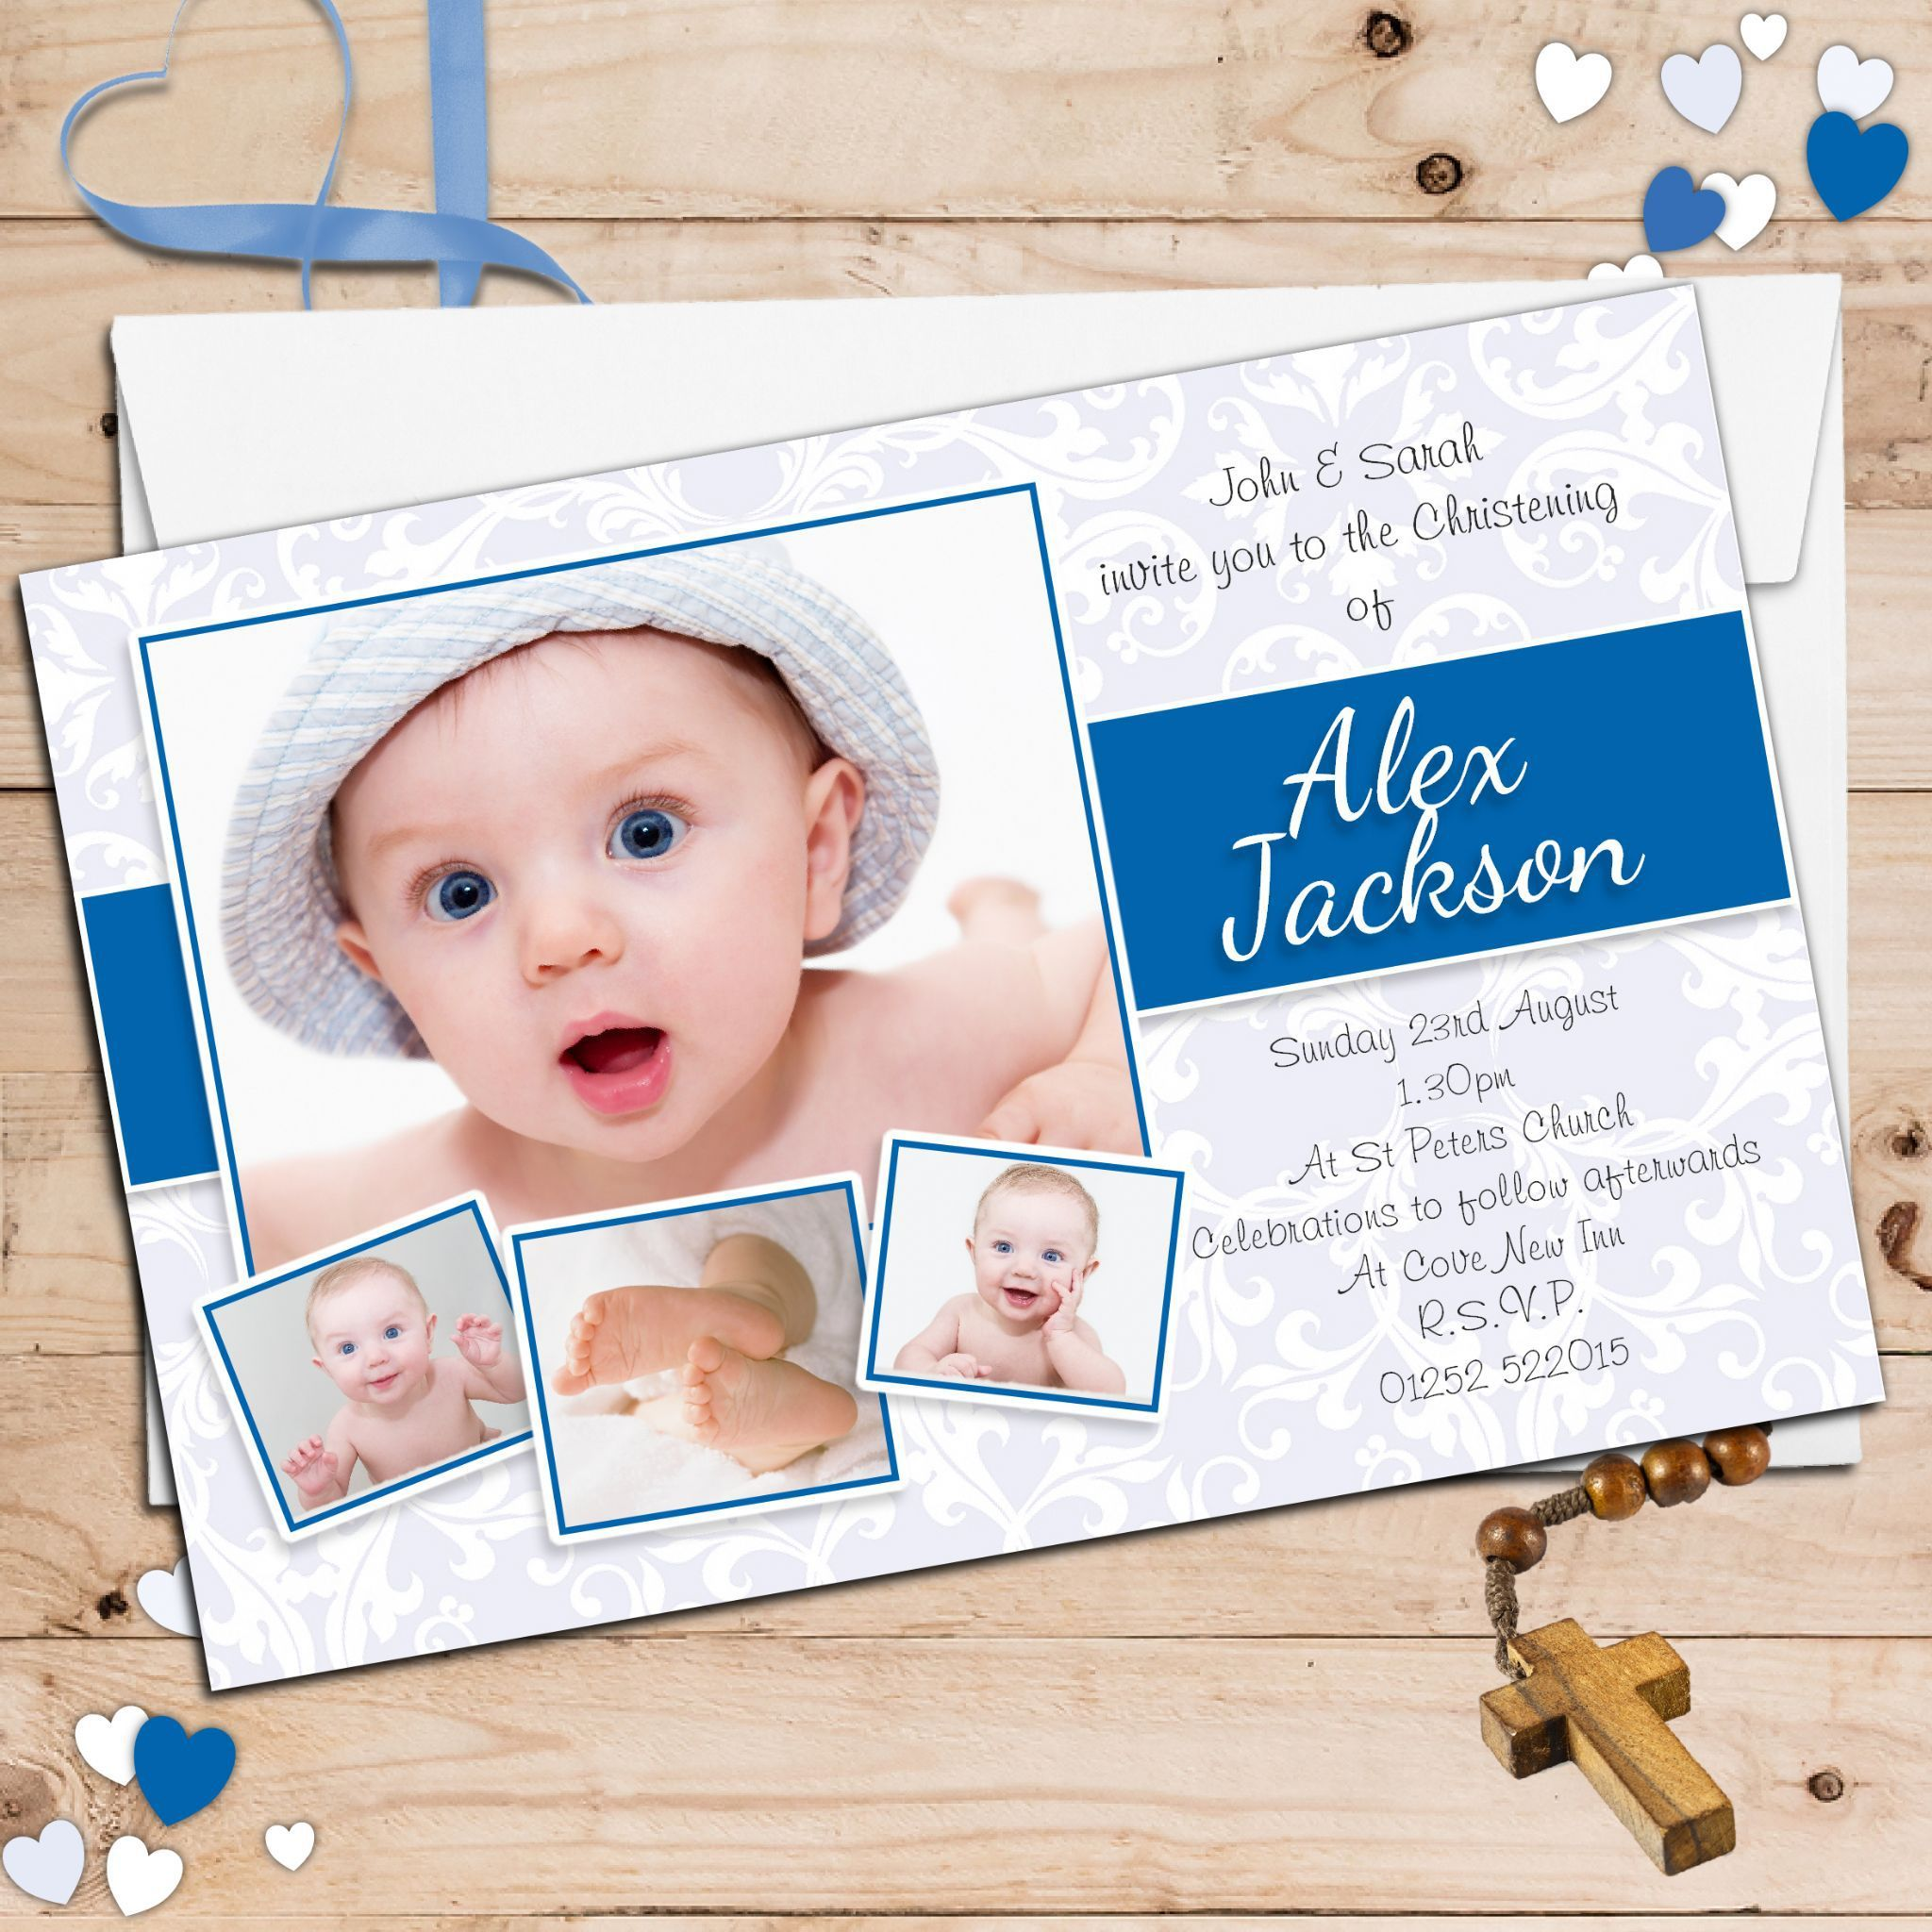 Baptism invitations for boy and girl twins baptism invitations baptism invitation baptism invitations for boy free invitation for you free invitation for you stopboris Gallery